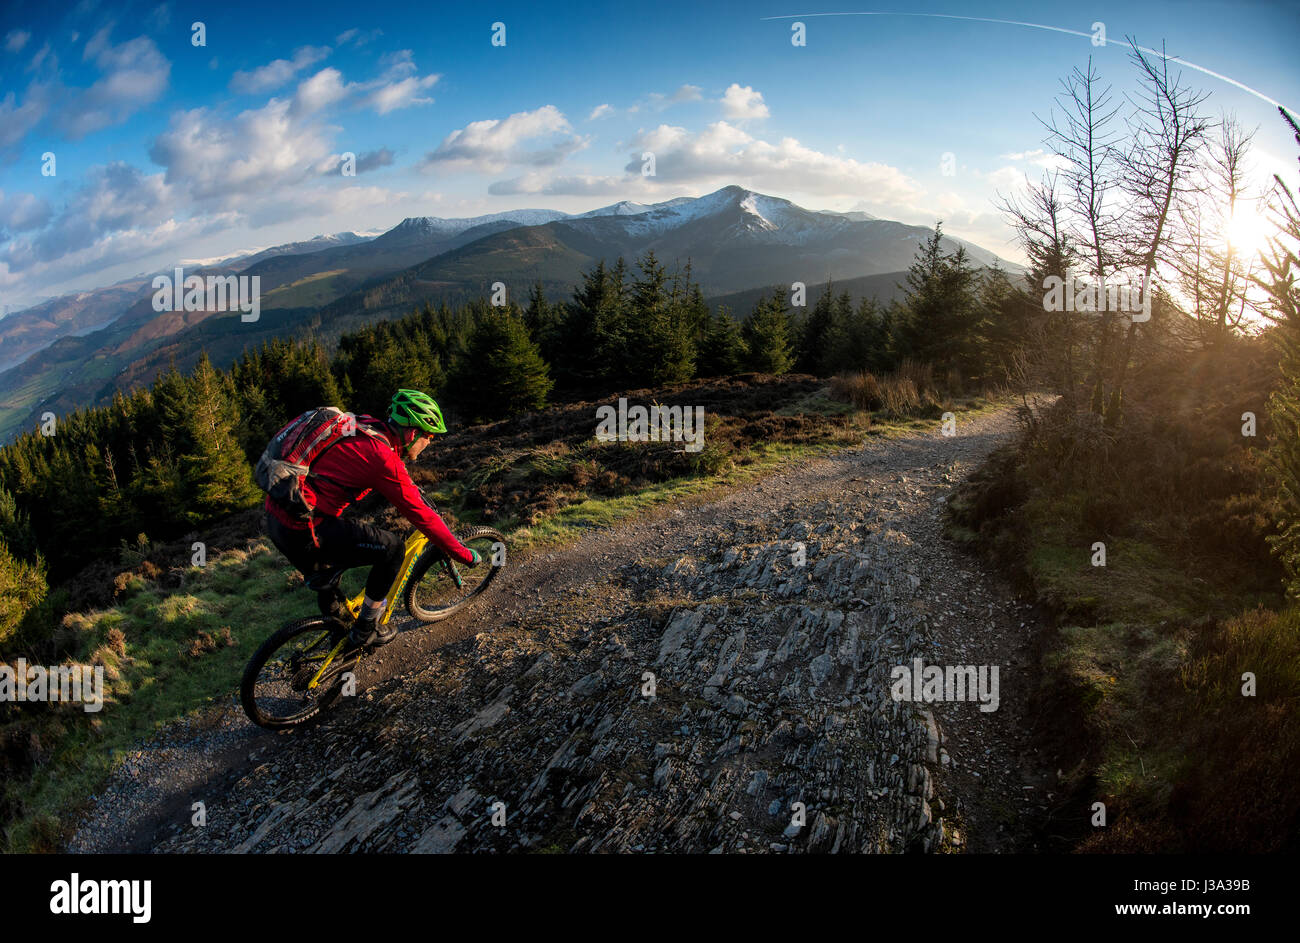 A mountain biker rides a trail at Whinlatter, England's only true Mountain Forest. - Stock Image